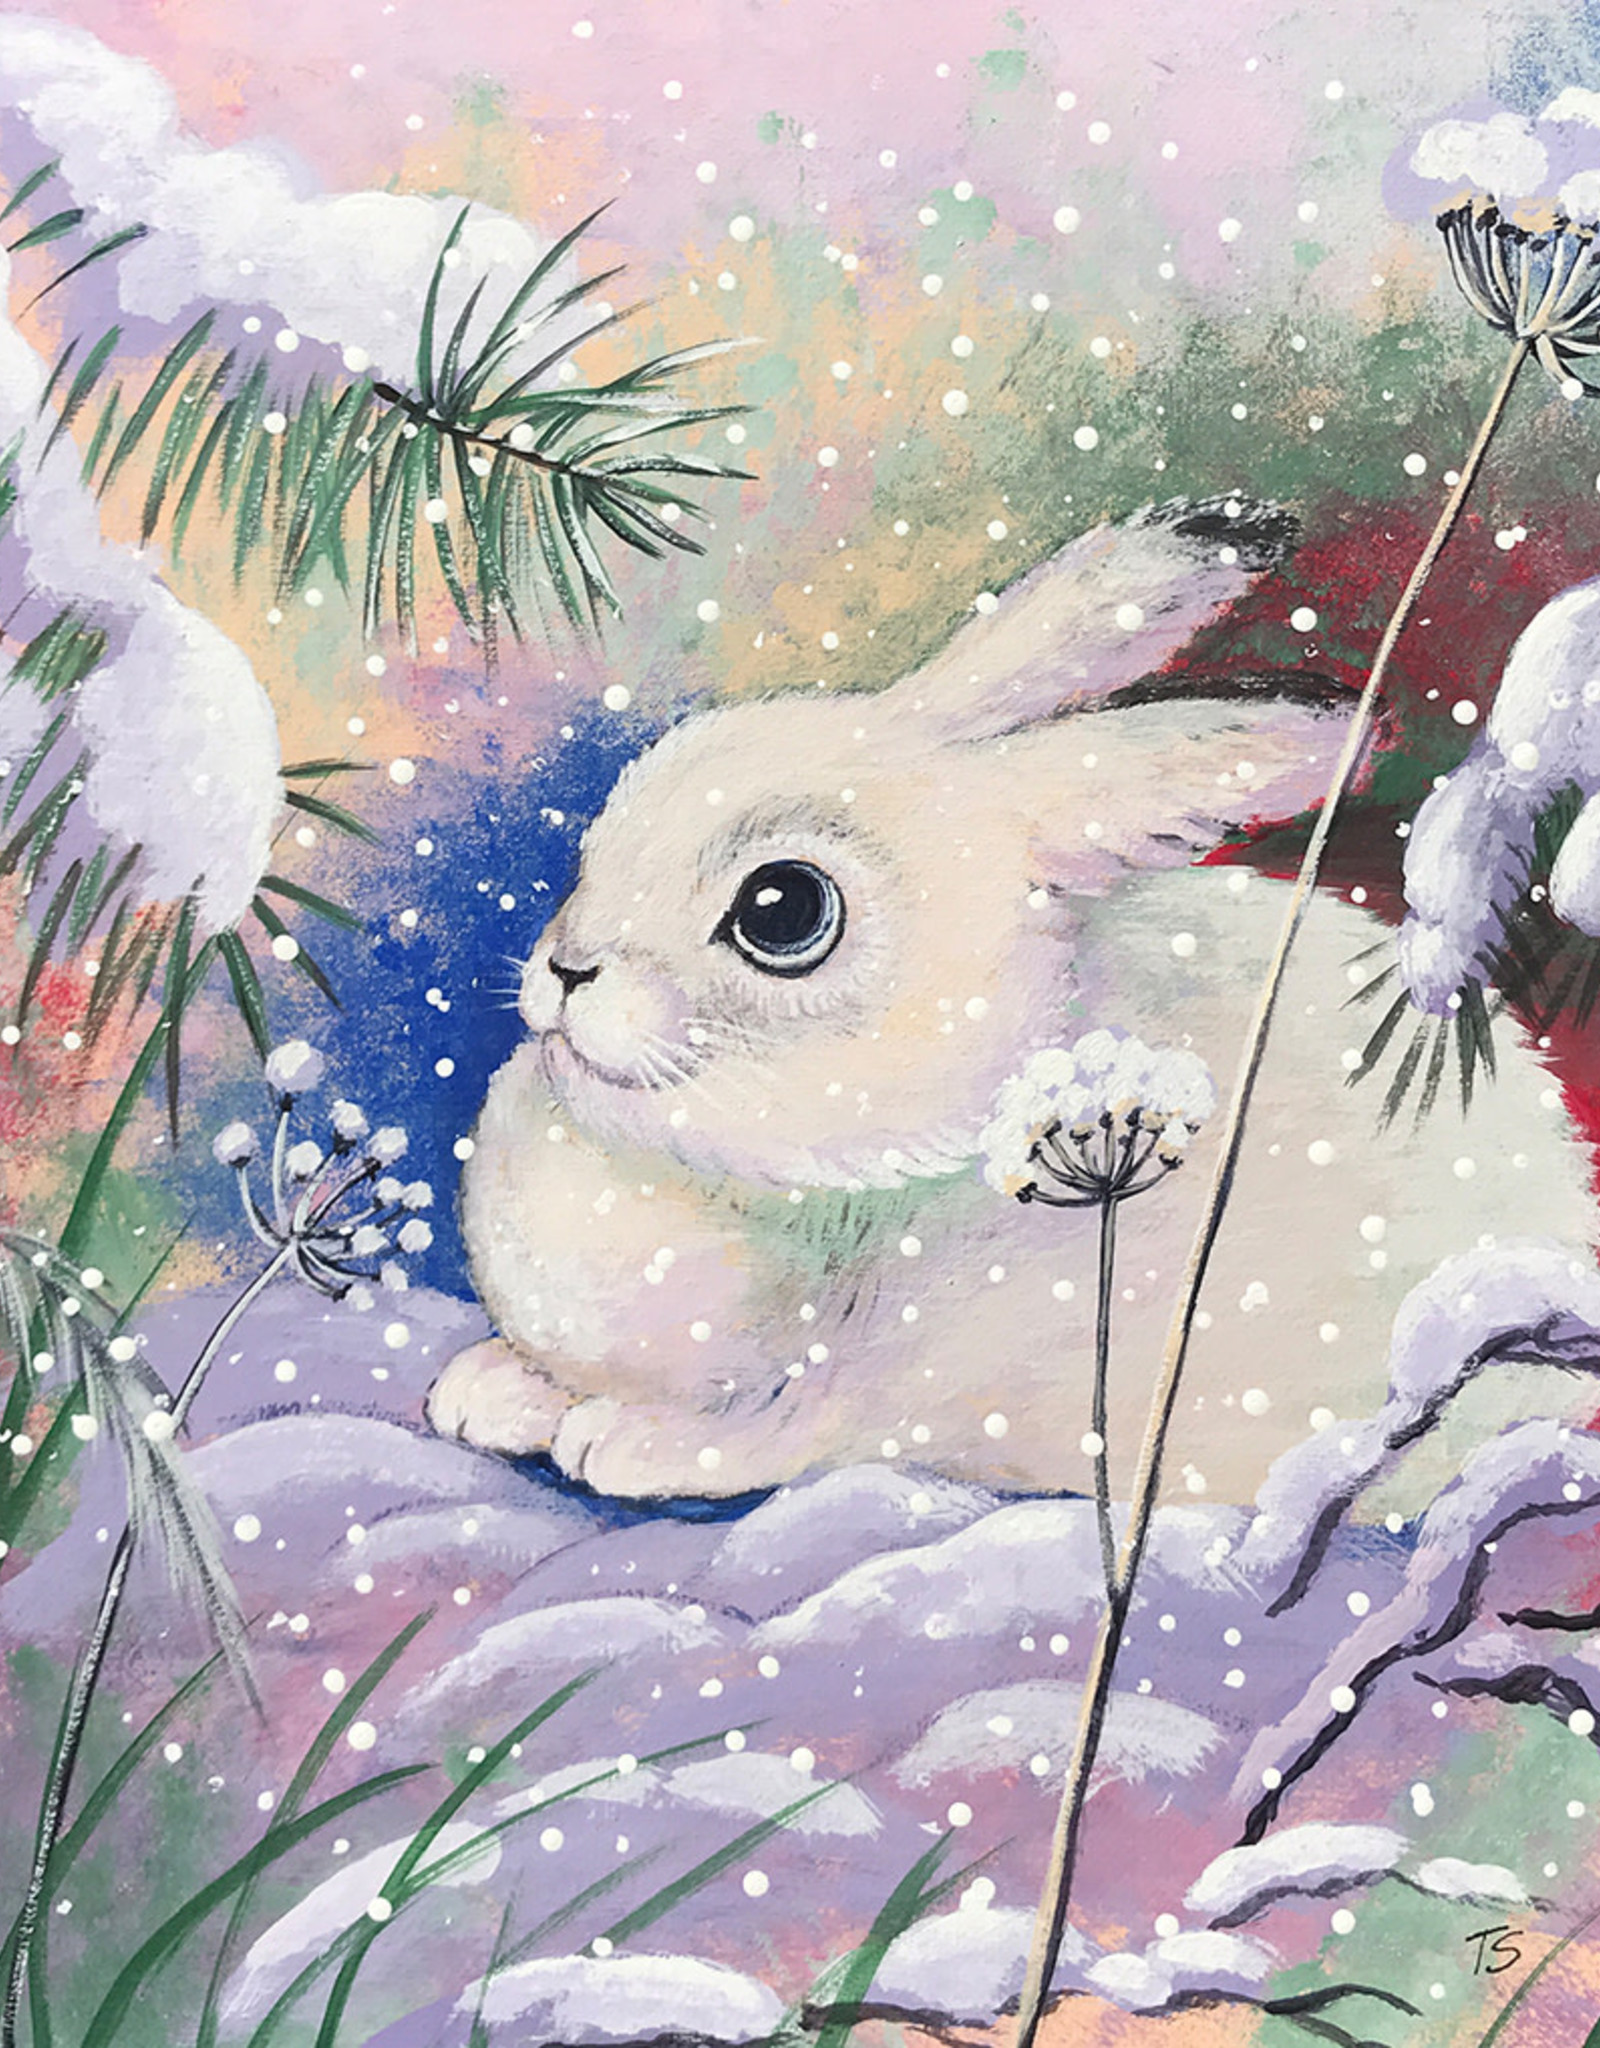 Tamara S Acrylic  White Rabbit on the Snow Wed Dec 23 11:00 am to 3:00 pm